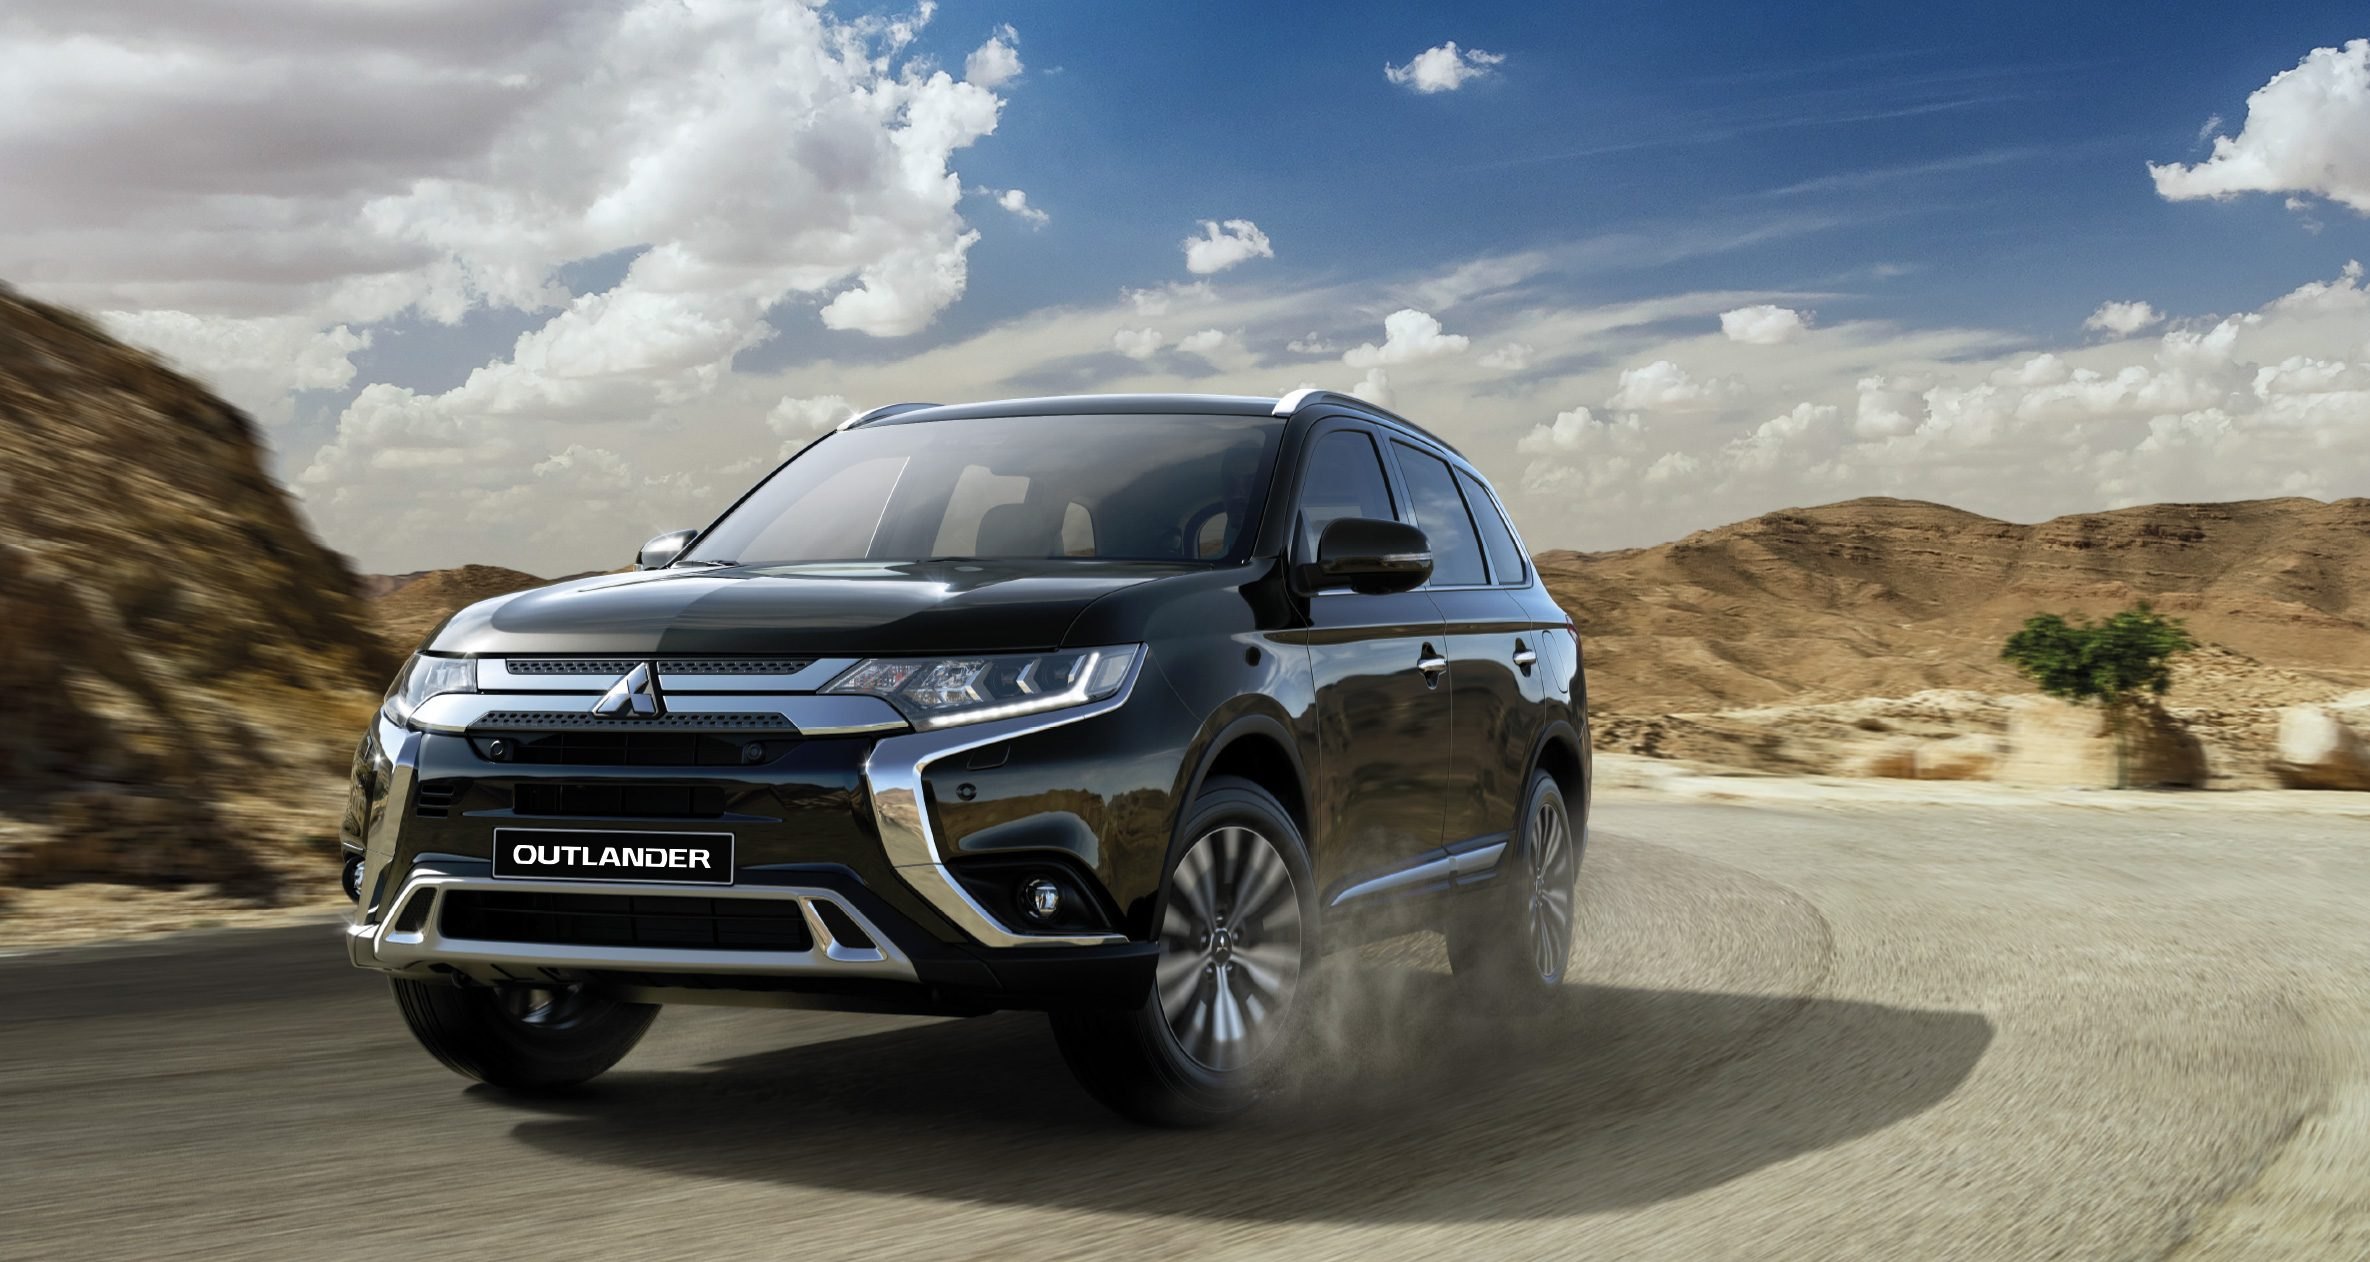 Mitsubishi Outlander; The Dream Mid-Size SUV